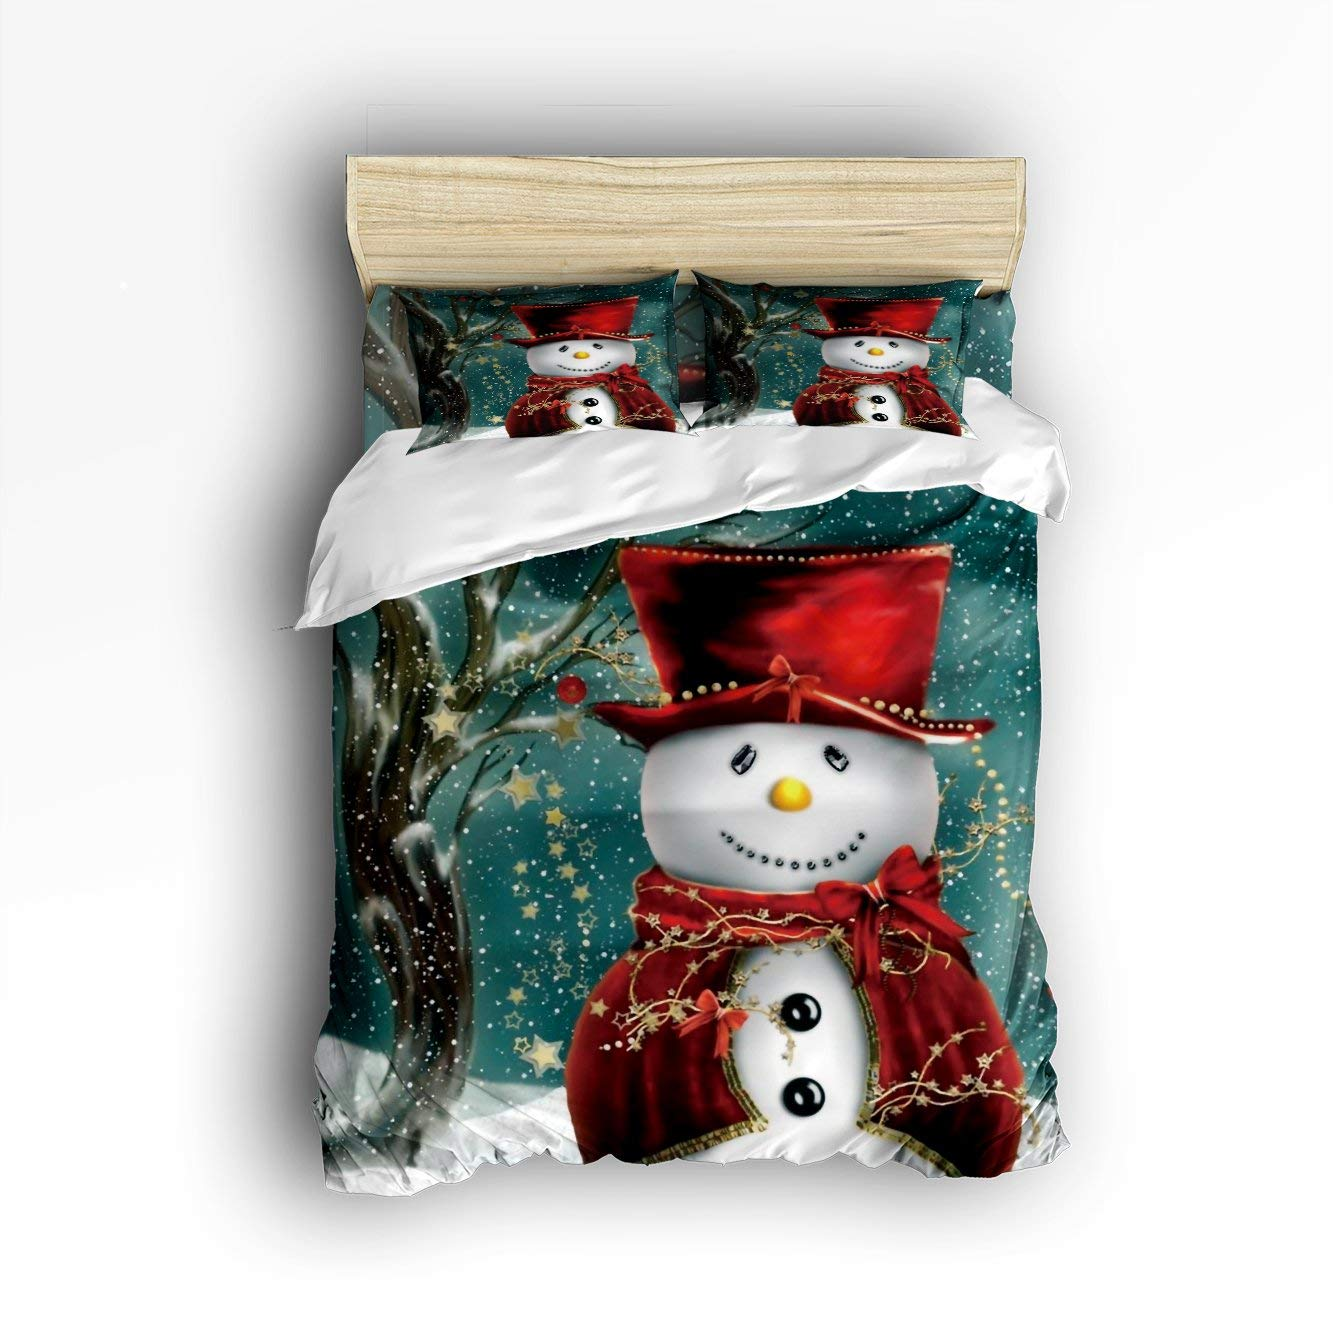 Family Decor Snowman Christmas Duvet Cover Set - Buy Christmas Duvet Covers